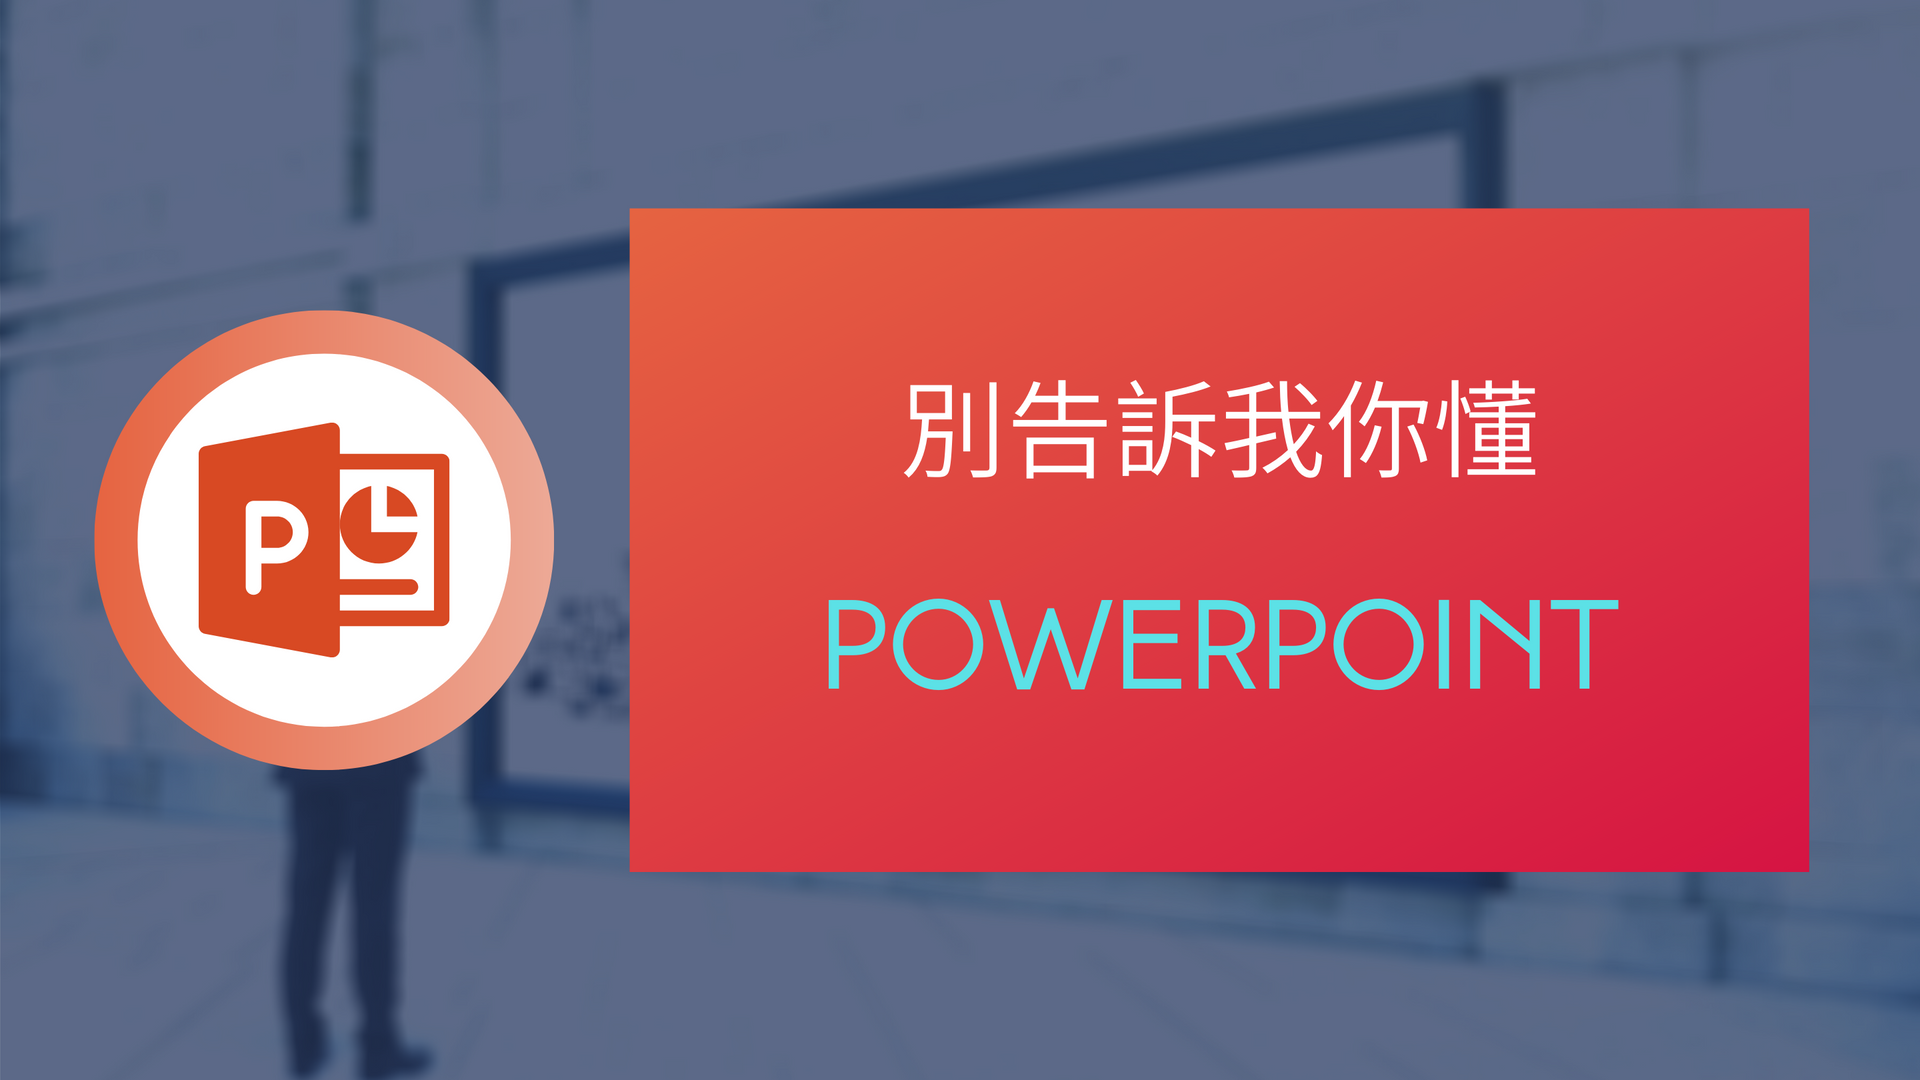 course - 別告訴我你懂PPT.png